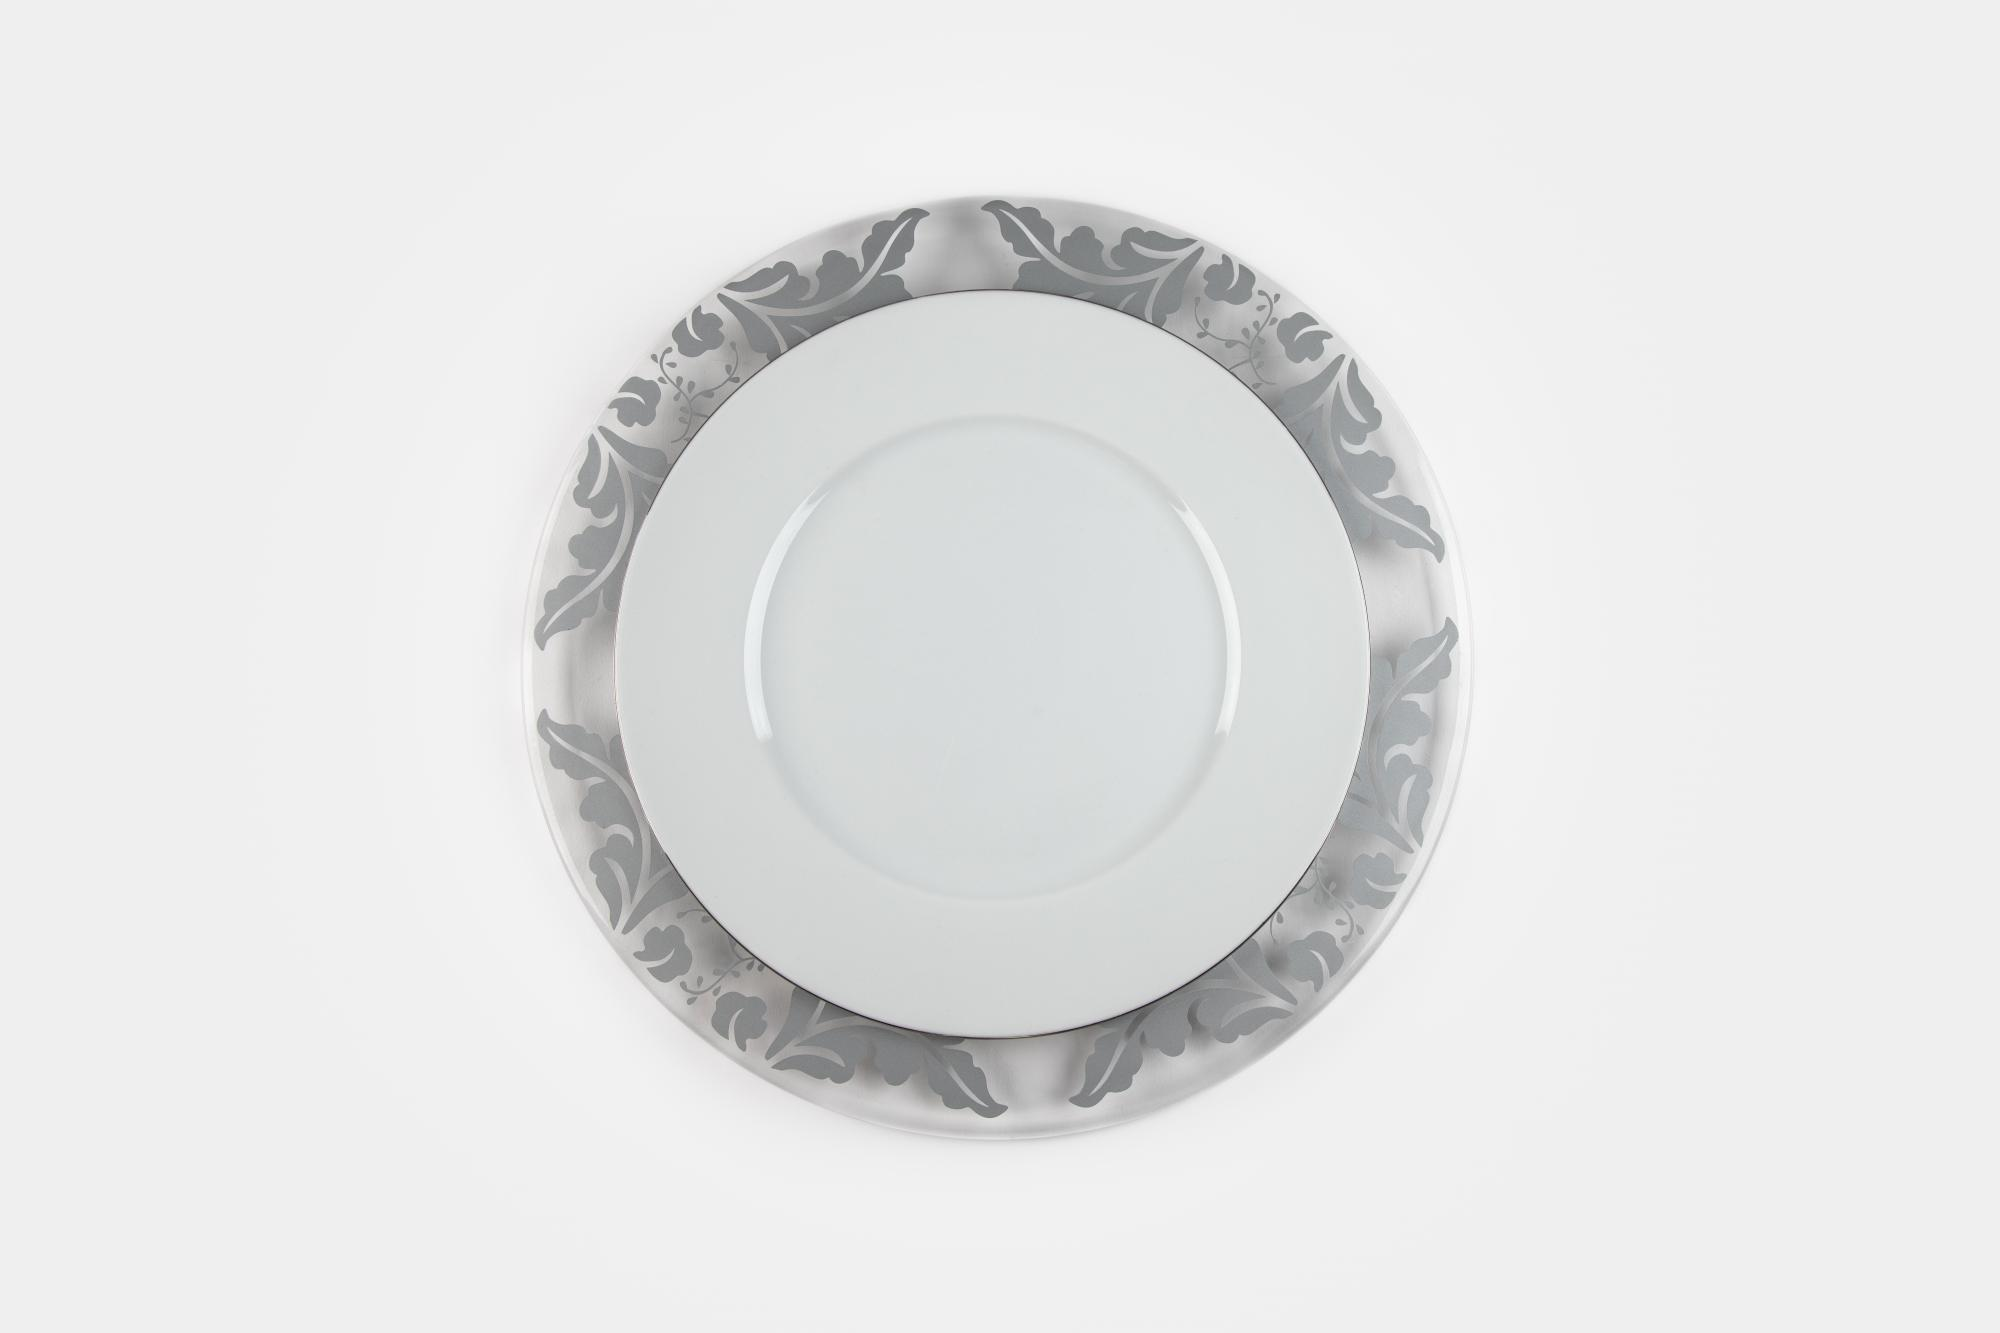 Grey flower charger - Image 1